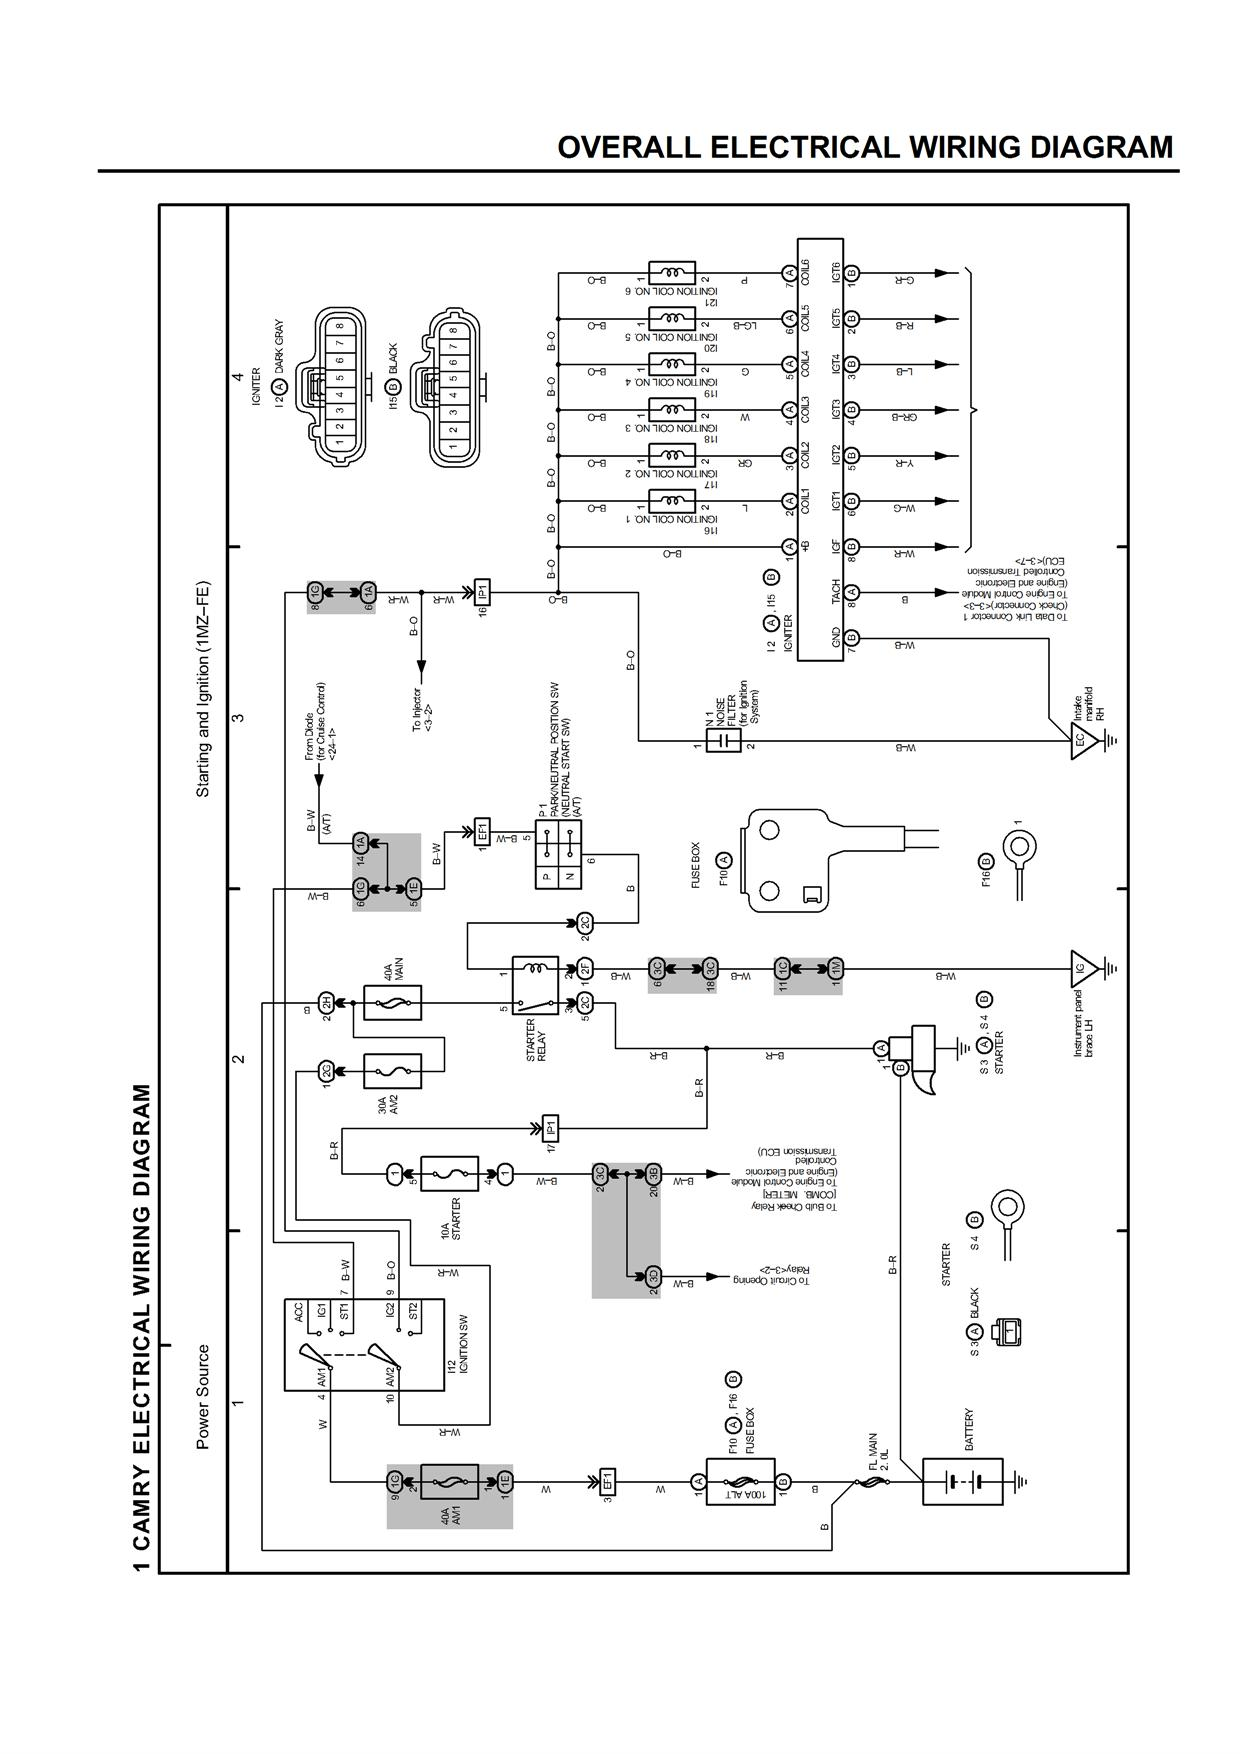 1993 Toyota Camry Fuse Diagram Wiring Schematic 2019 Box H There I Have A Wide Body The Motor Location